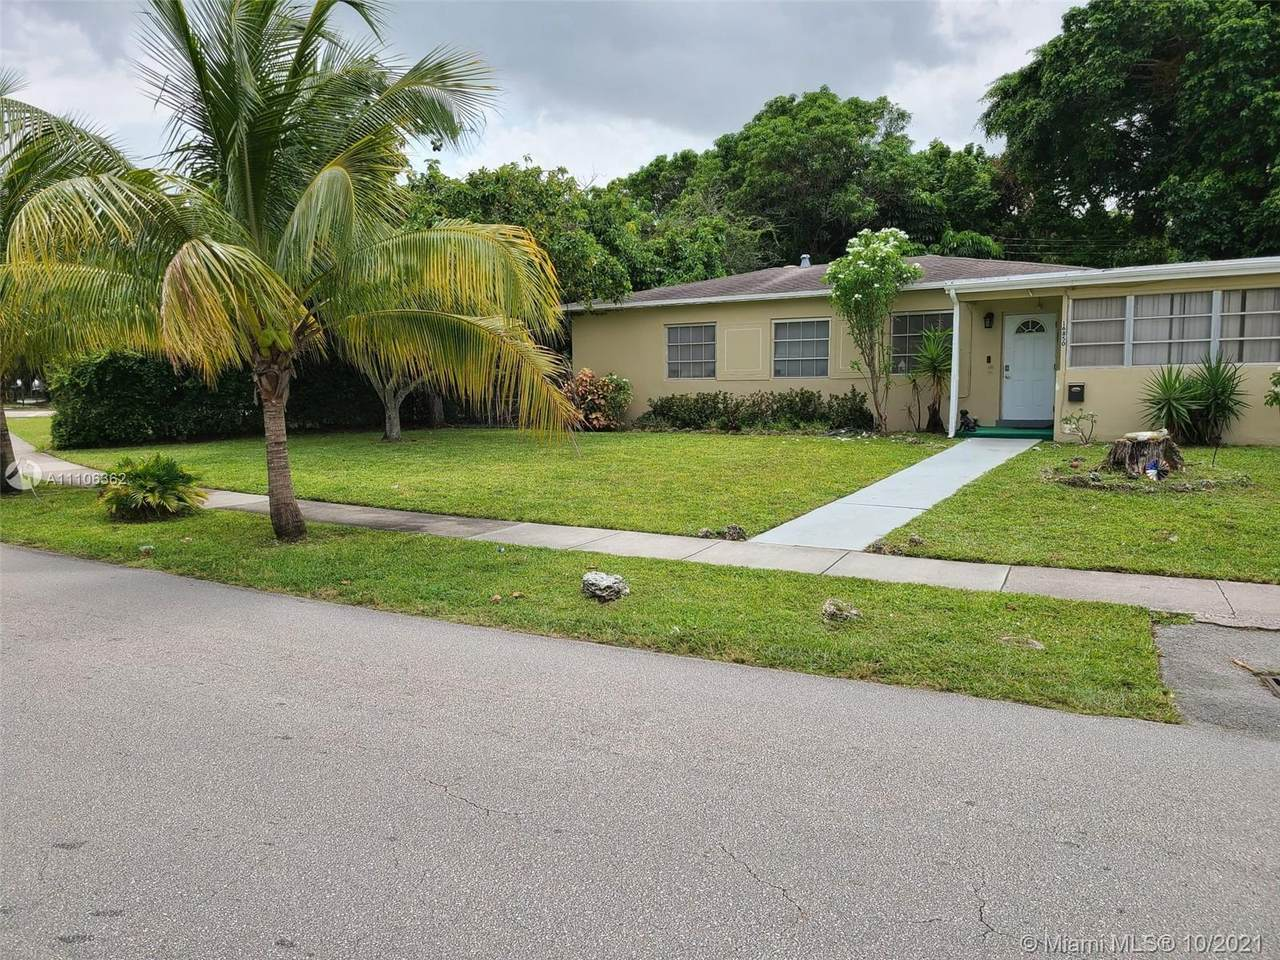 16850 8th Ave - Photo 1